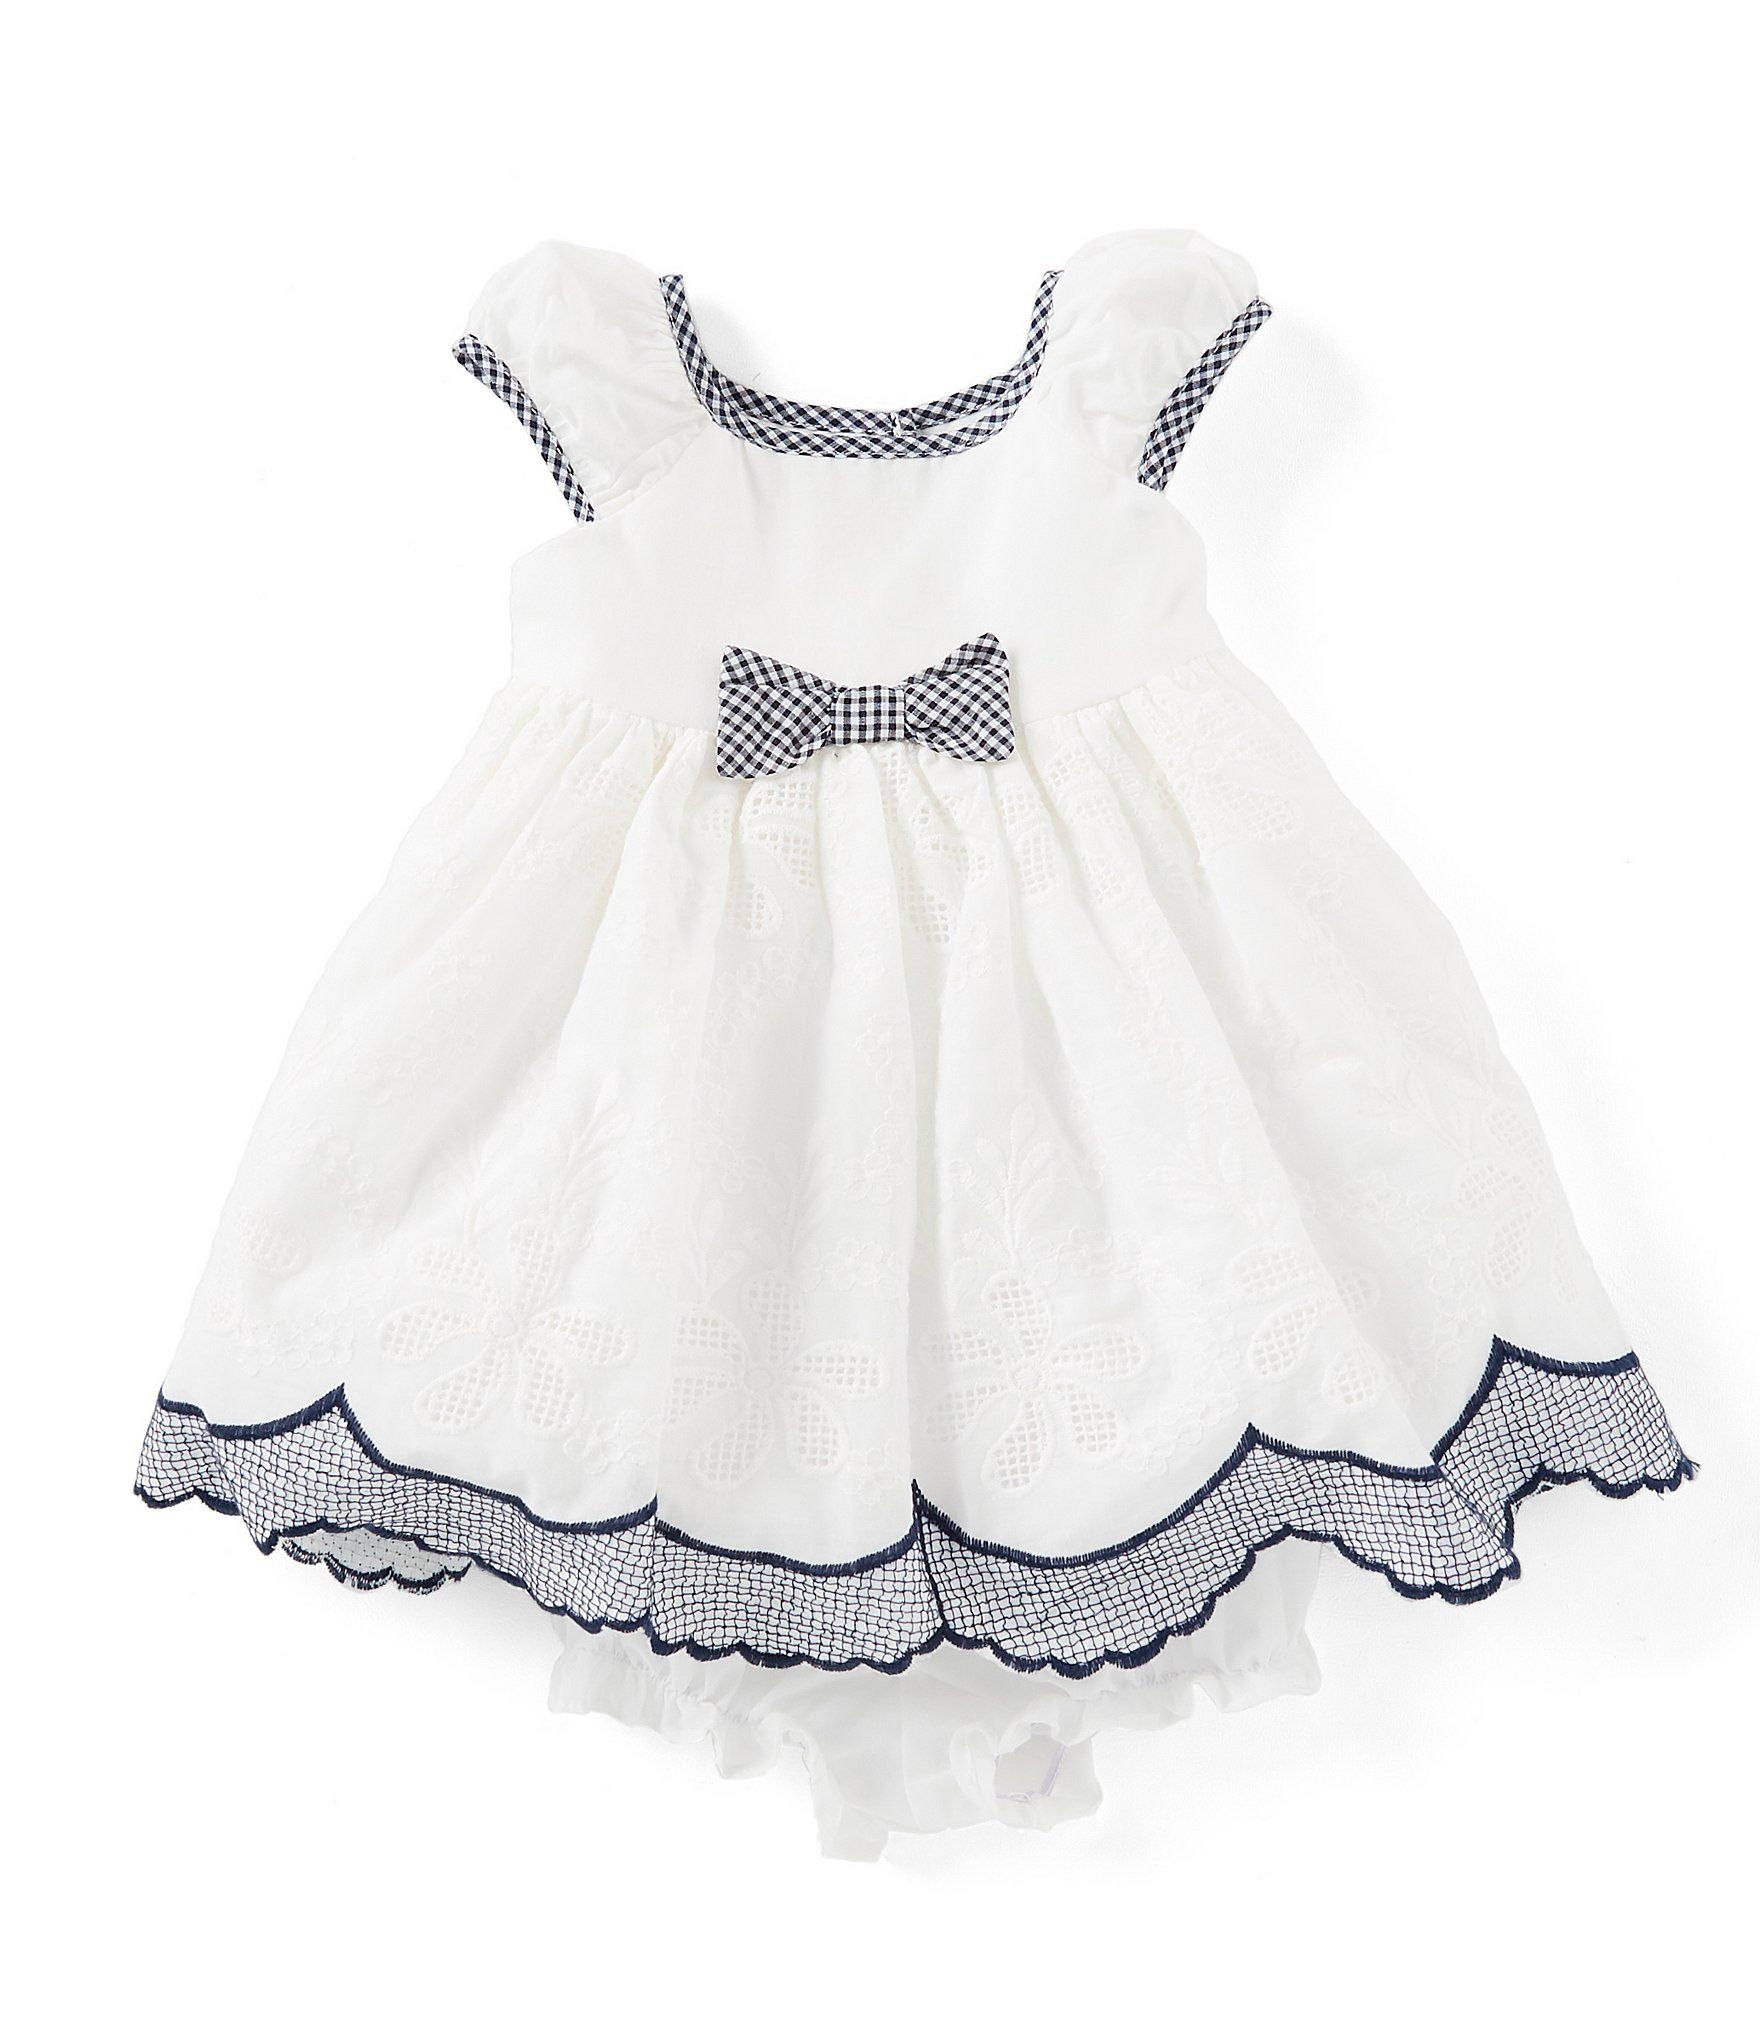 818a283f7 Laura Ashley Baby Girls Newborn-24 Months Bow-Accented Fit-And-Flare ...